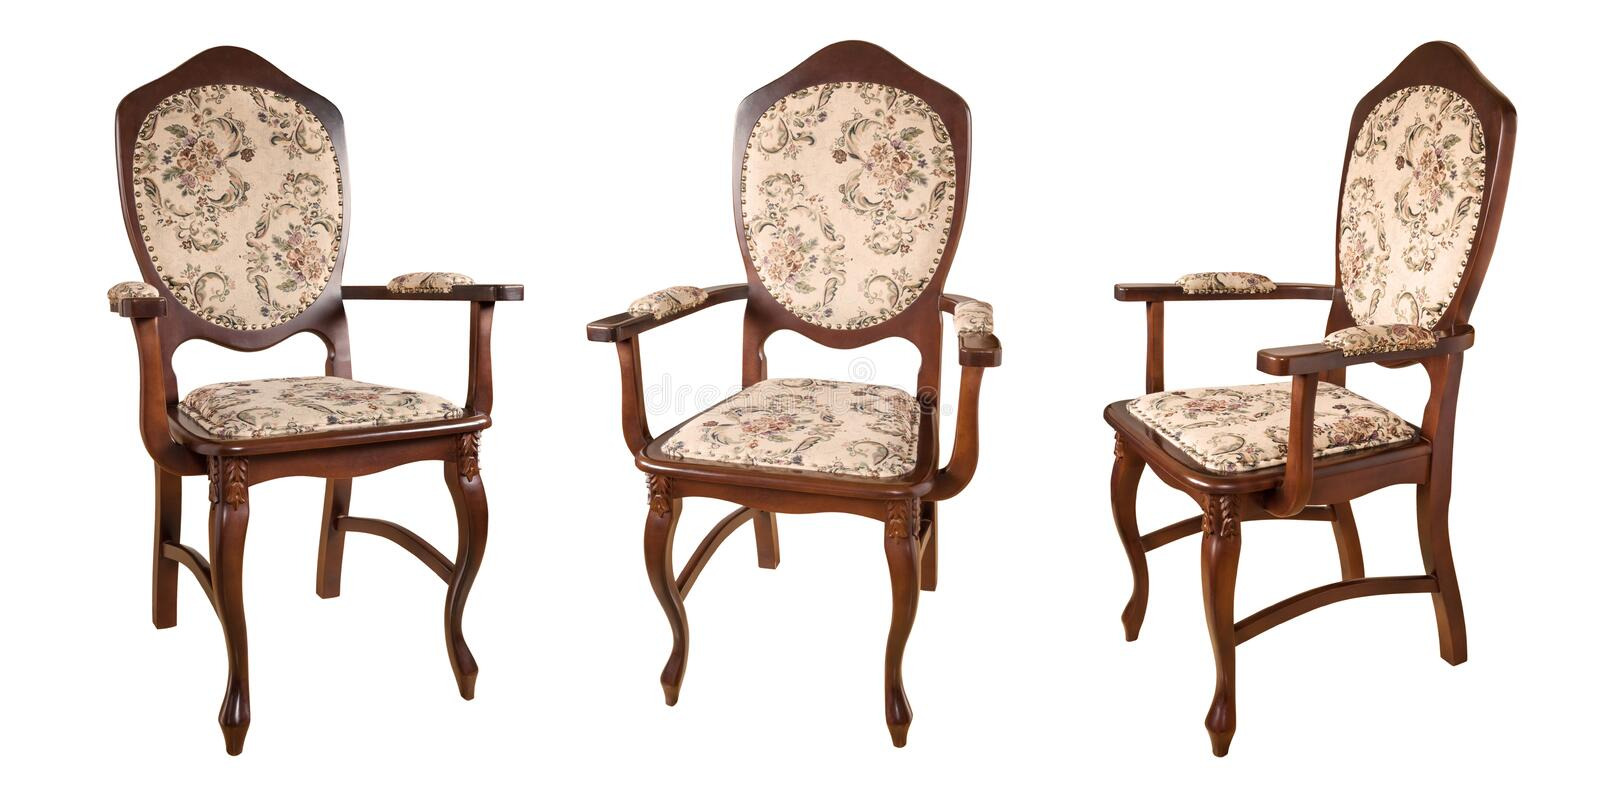 Vintage wooden chairs isolated on white background. Retro style. Furniture for refined interior. royalty free stock images